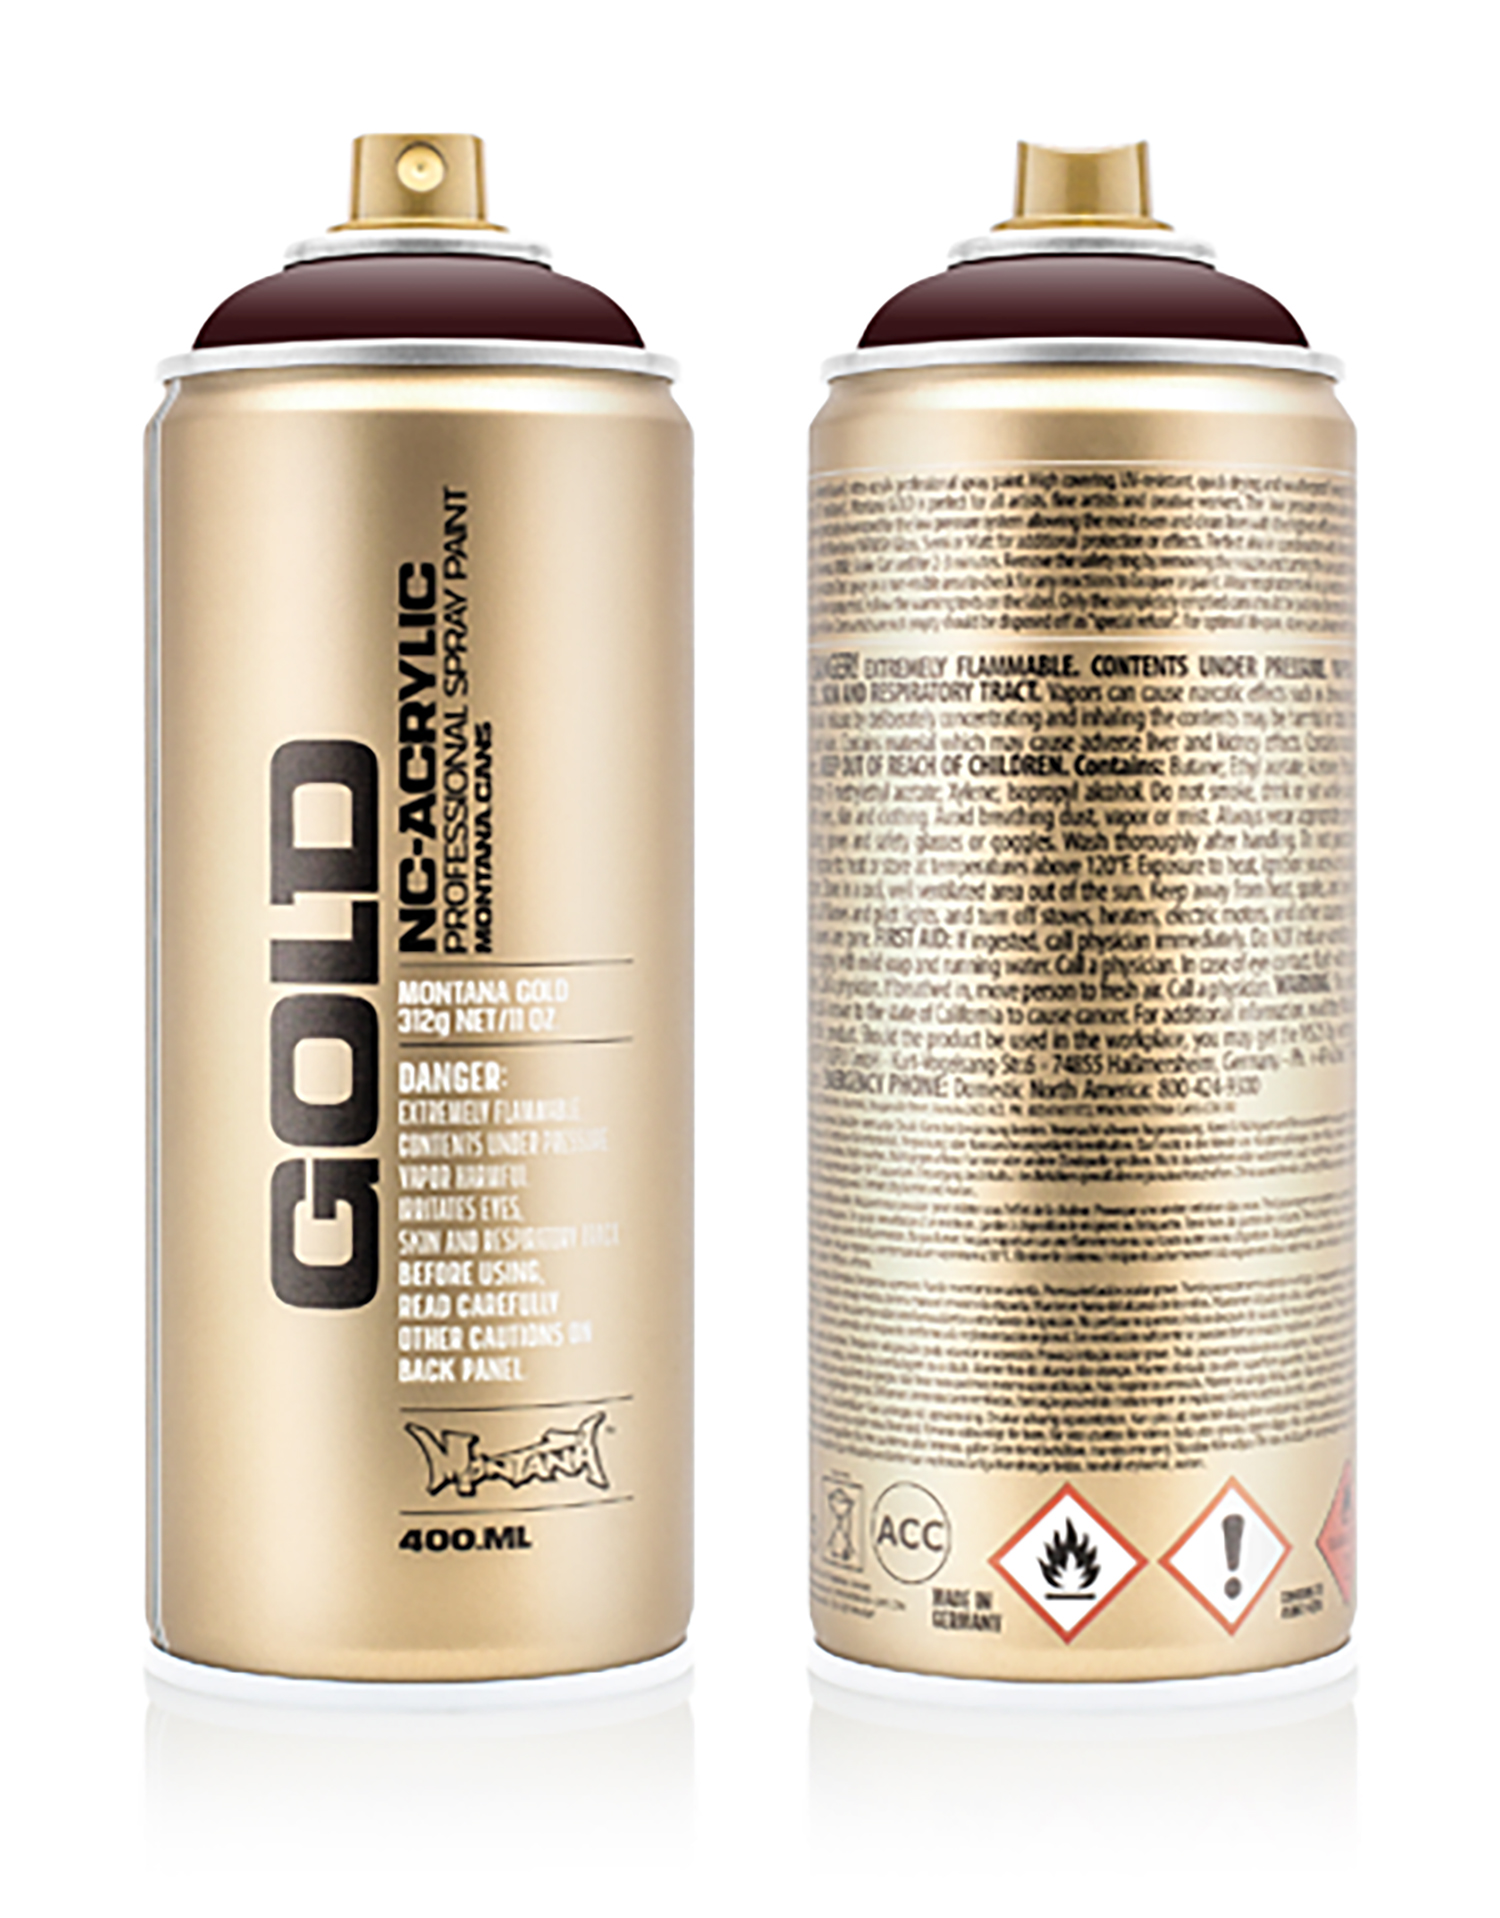 MONTANA-GOLD-SPRAY-400ML-G-8115